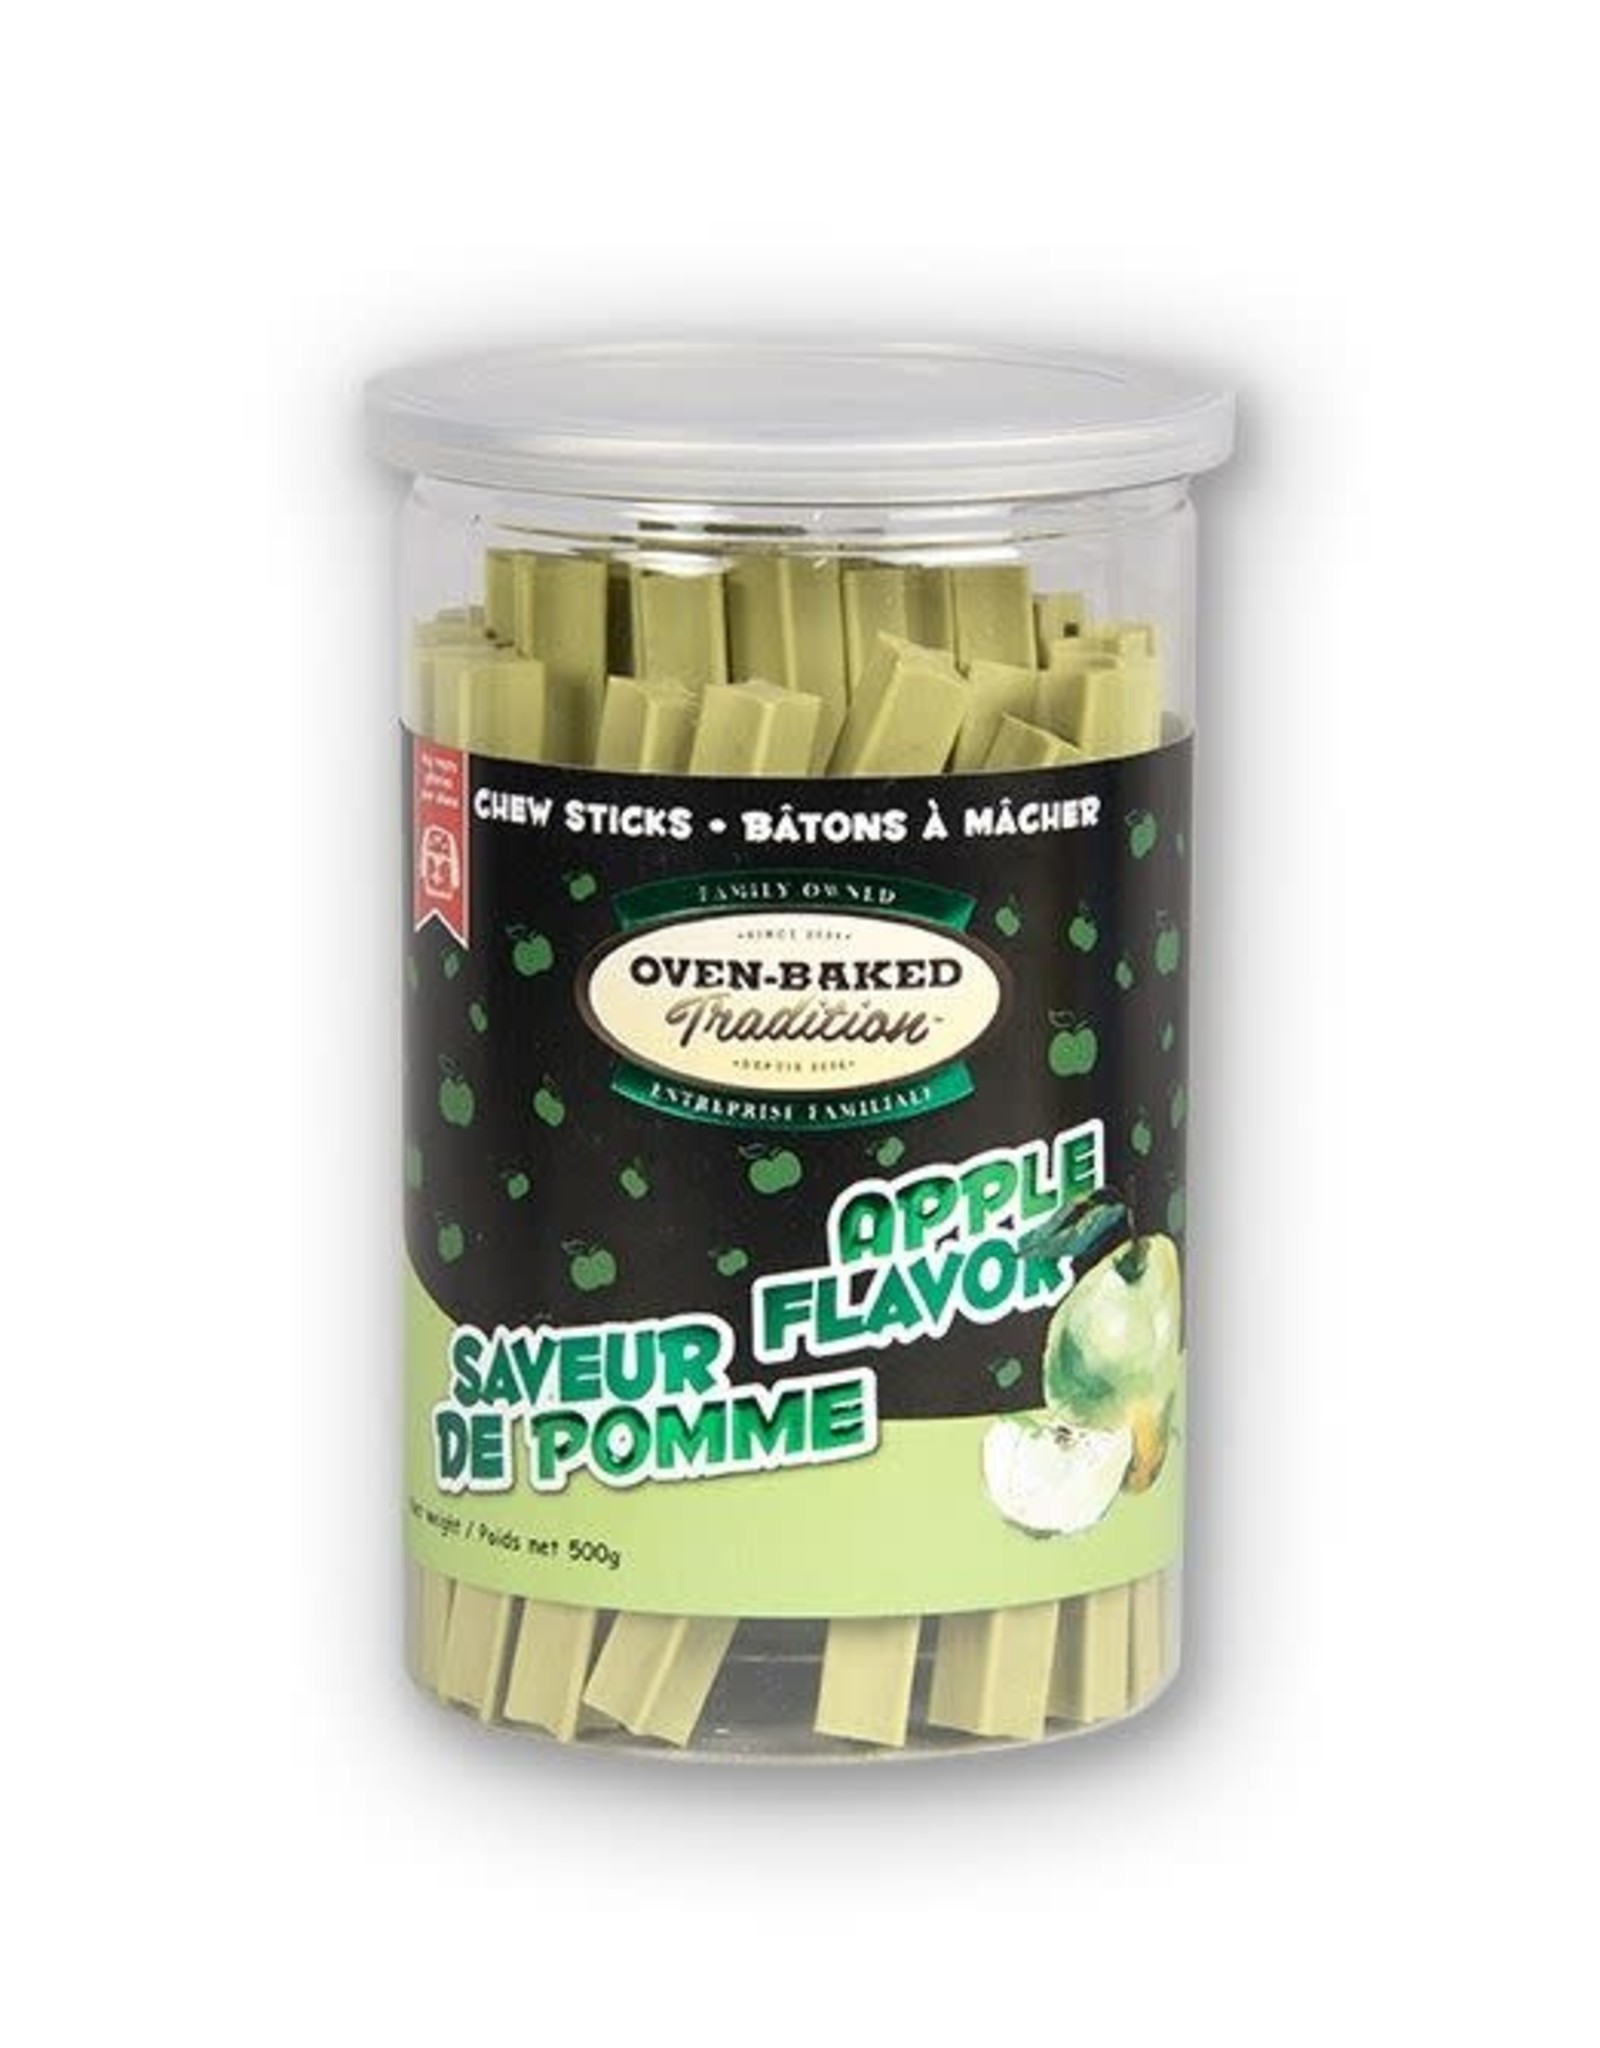 Oven Baked Tradition Apple Flavour Chew Sticks, 200g